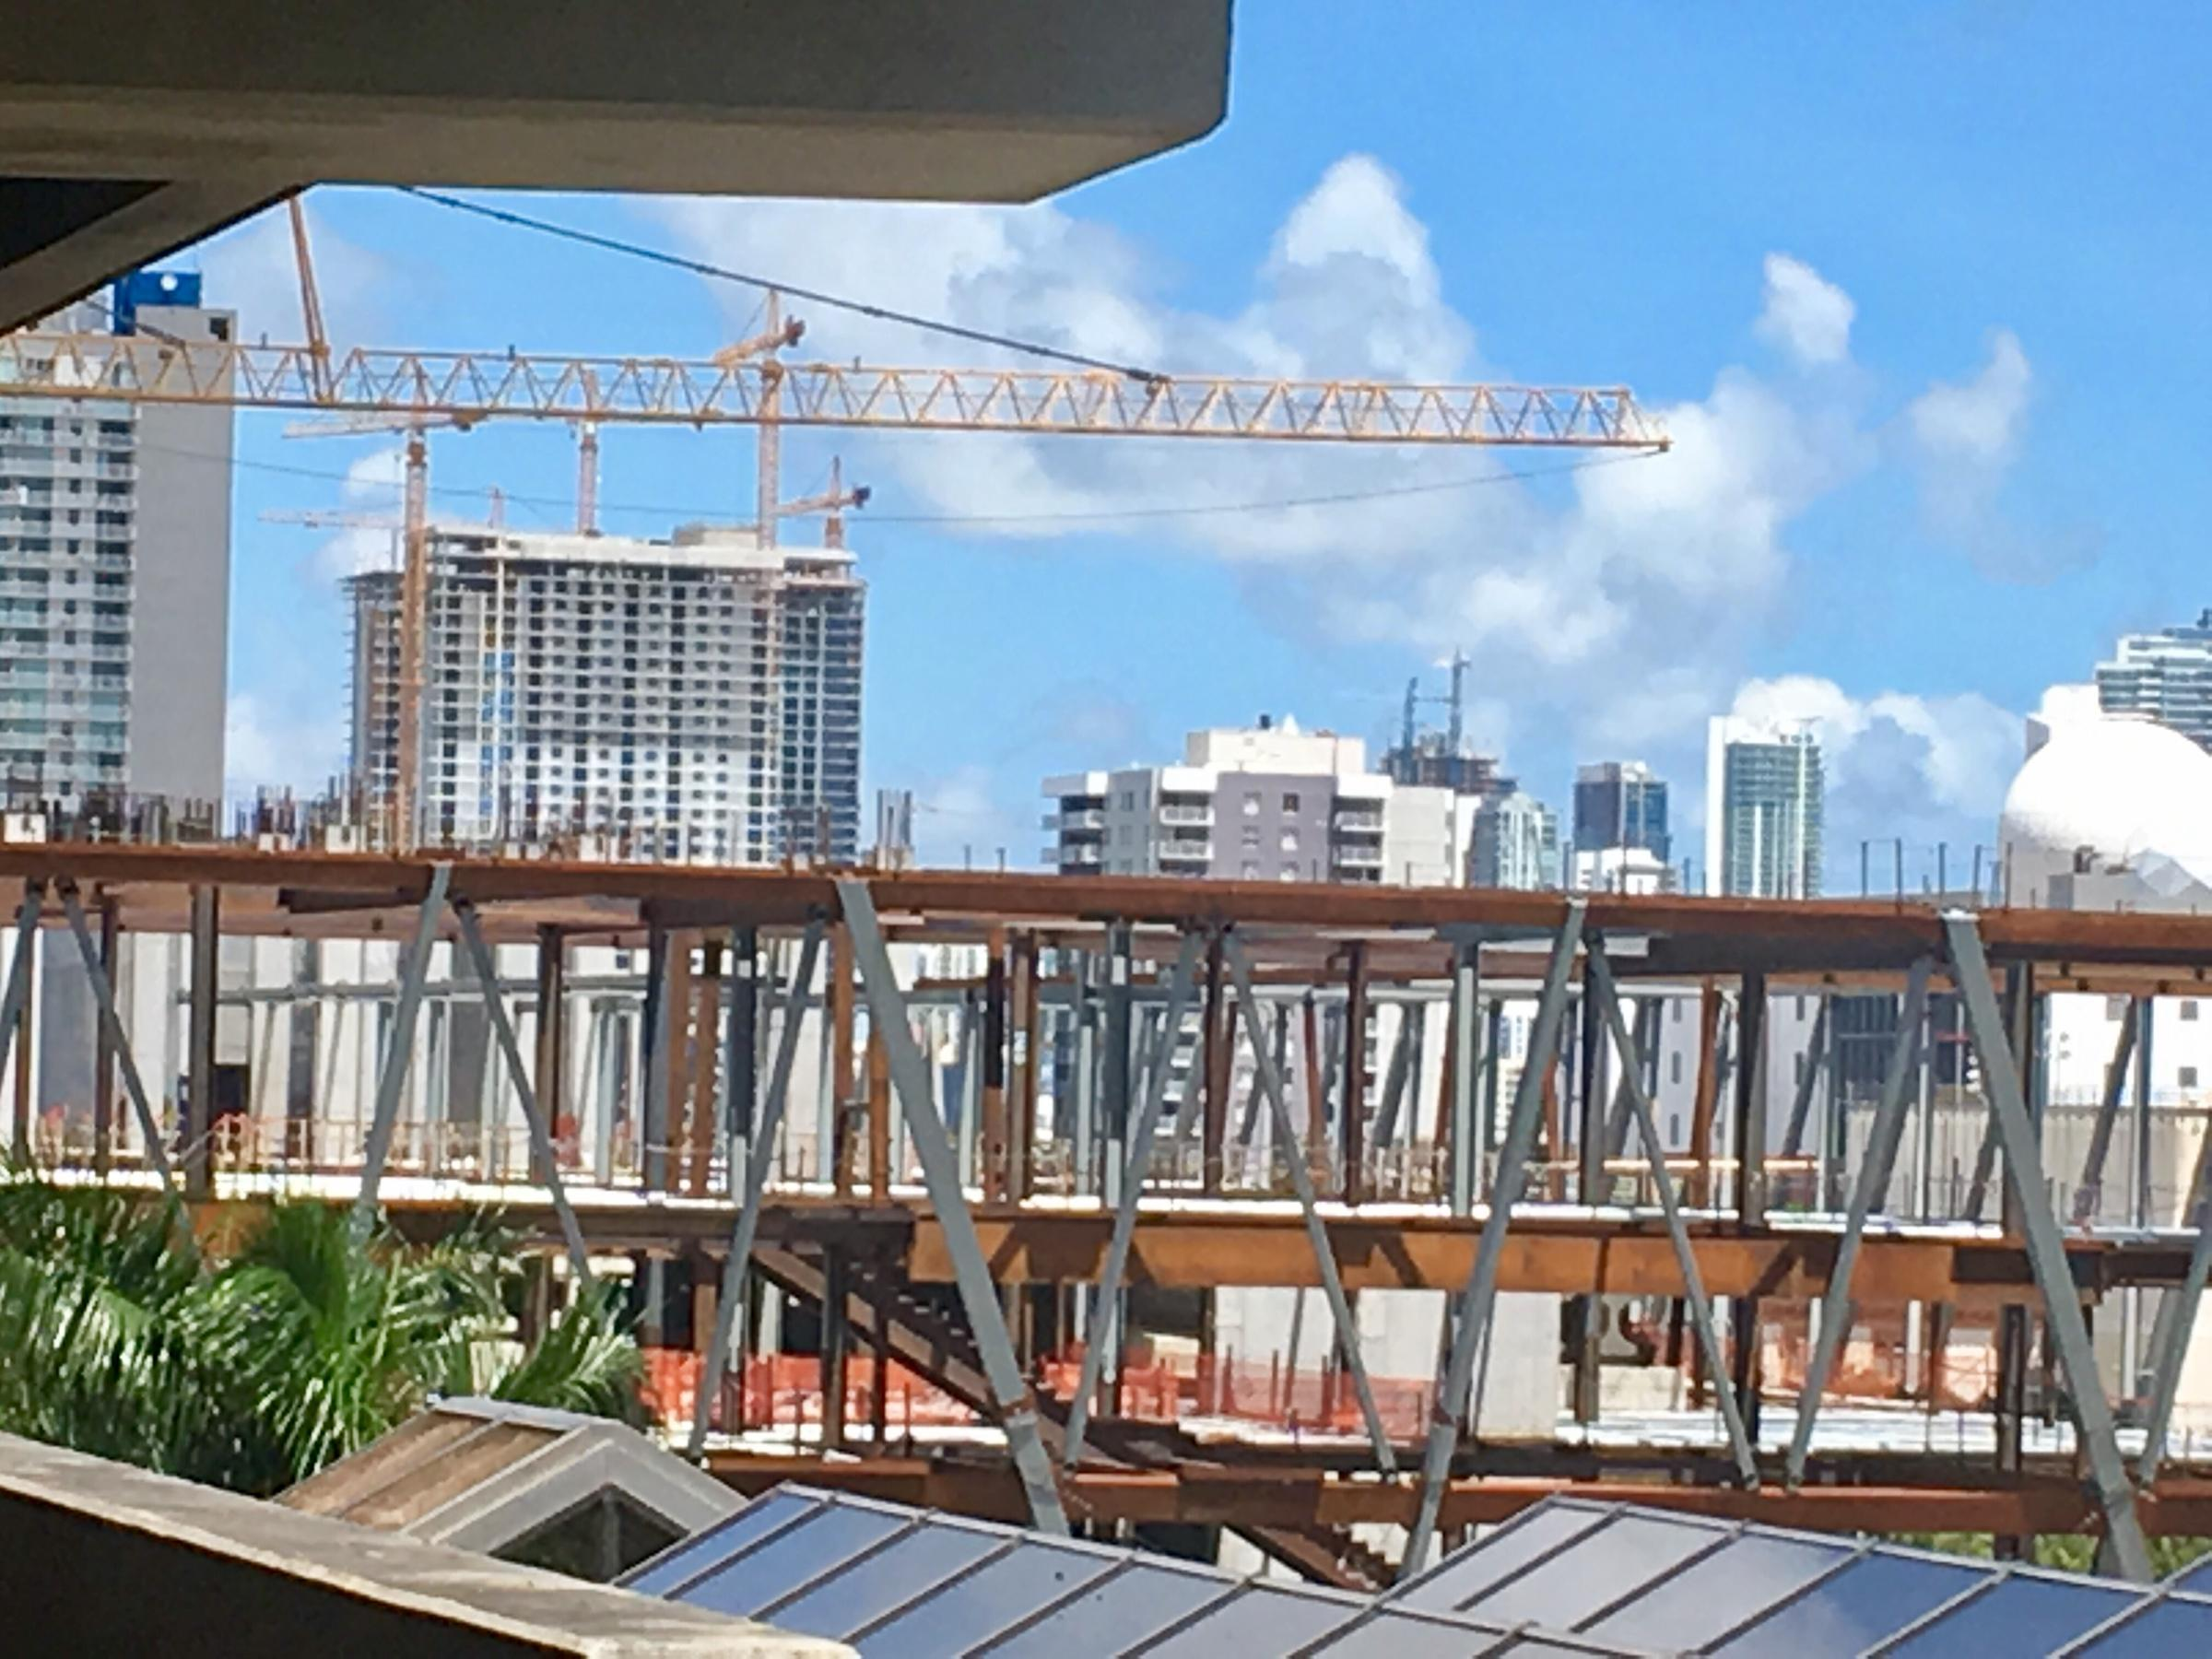 Construction cranes collapse in downtown Miami